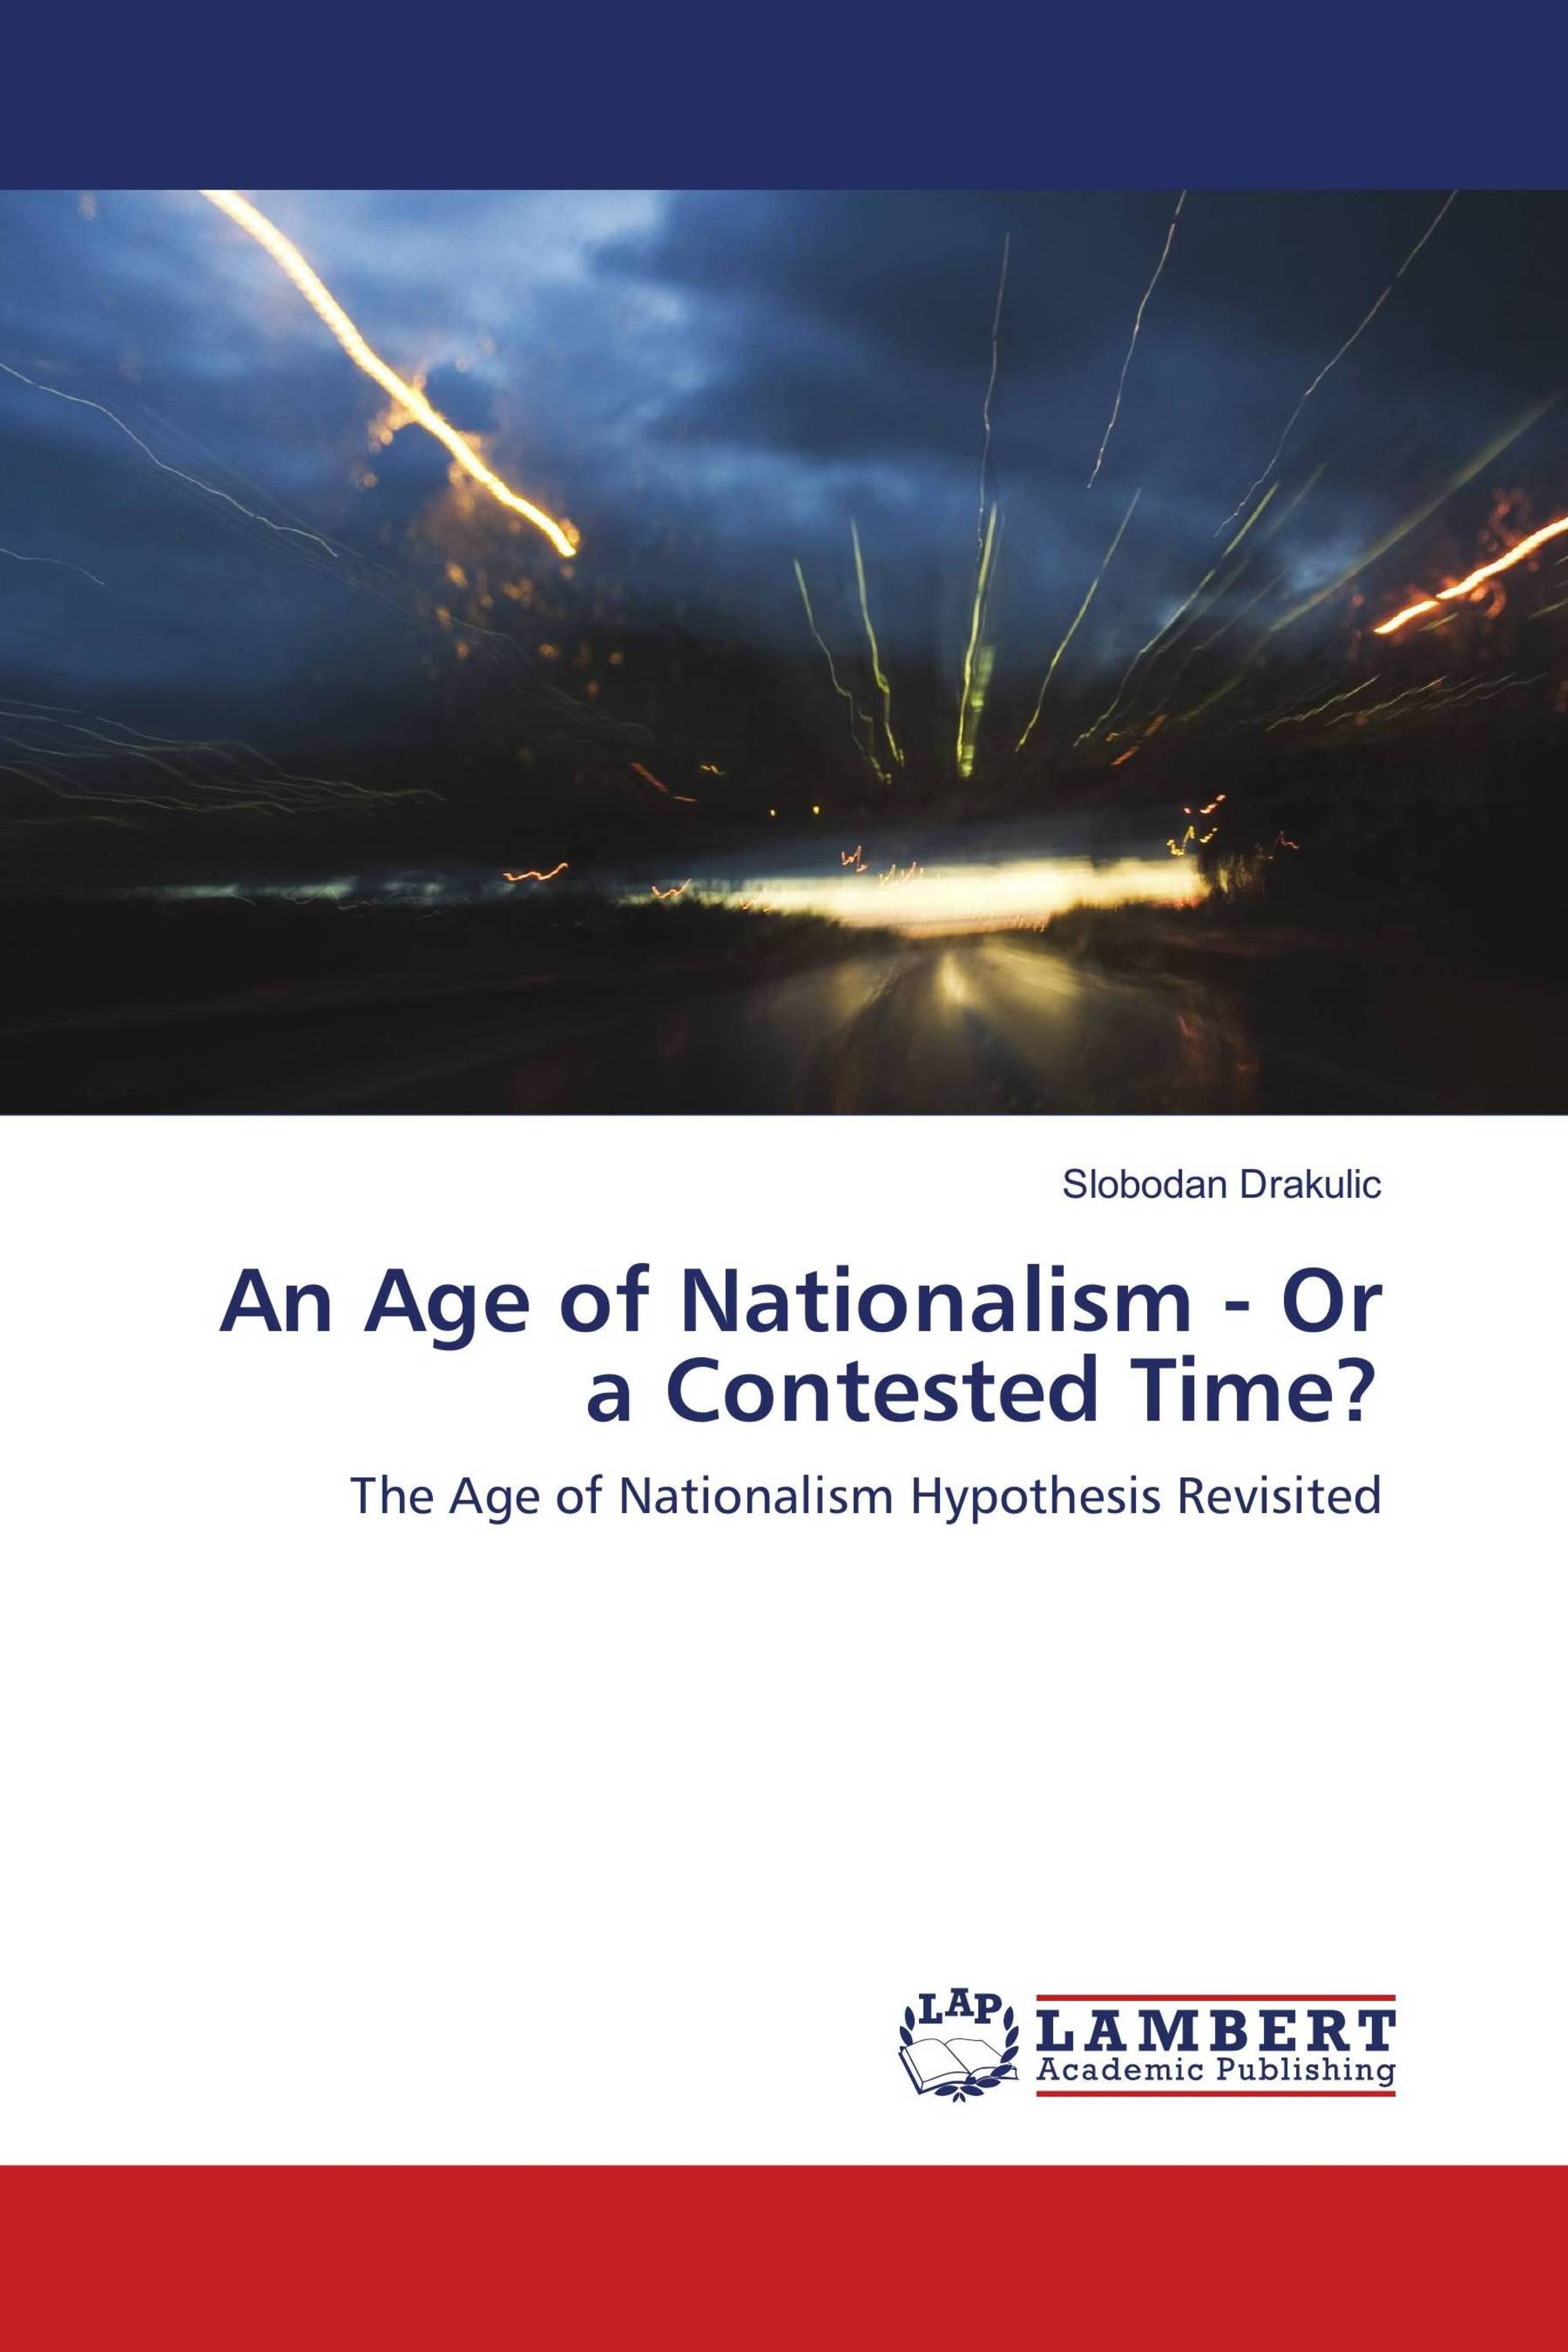 An Age of Nationalism - Or a Contested Time?